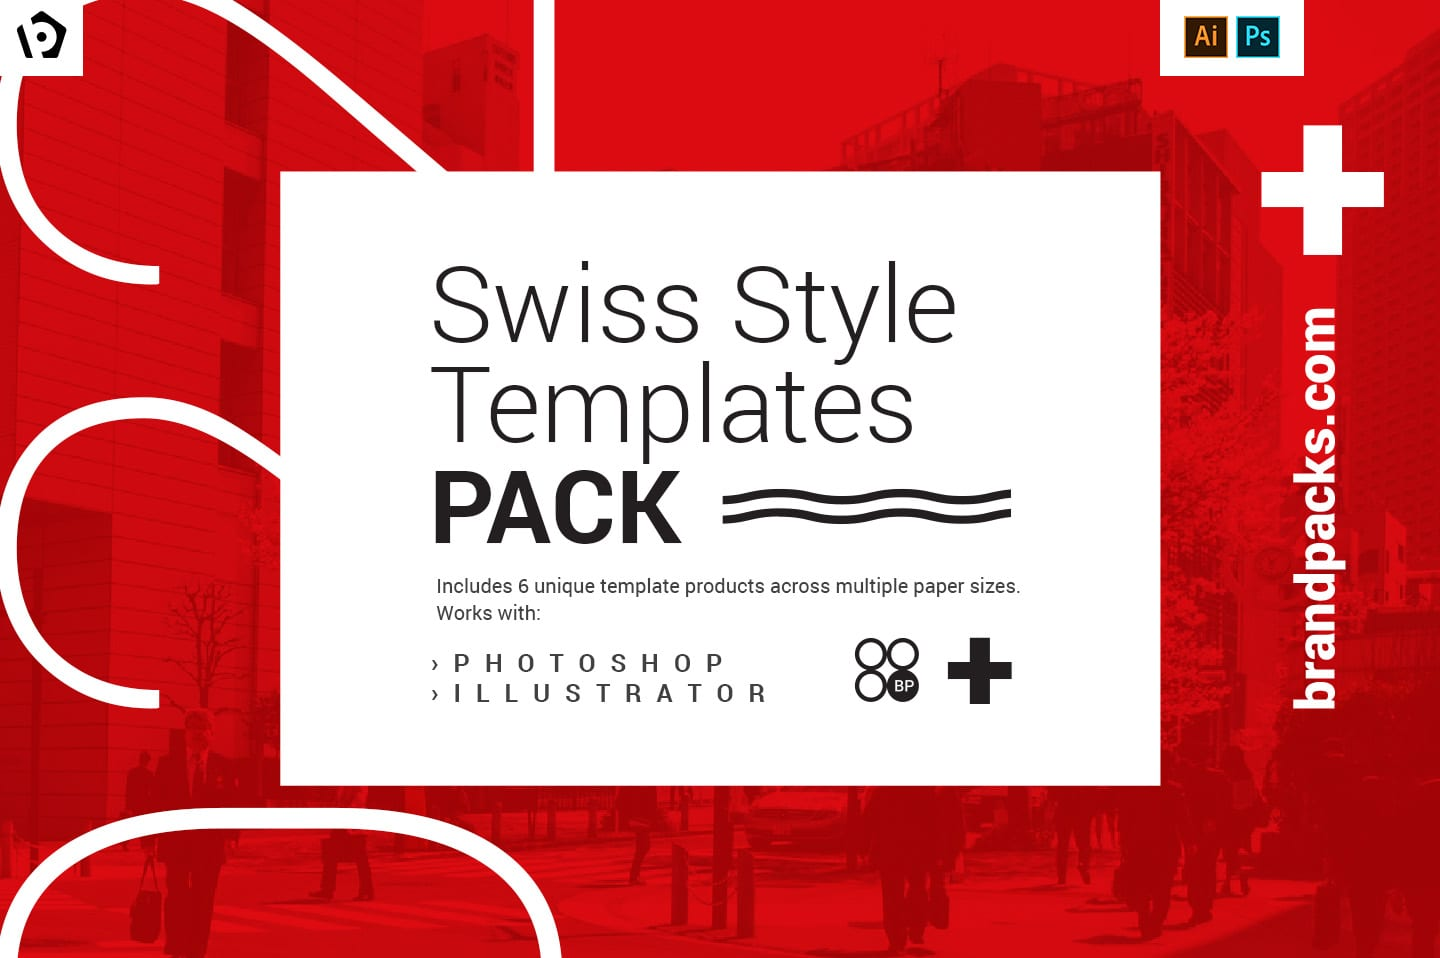 Swiss Style Templates Pack